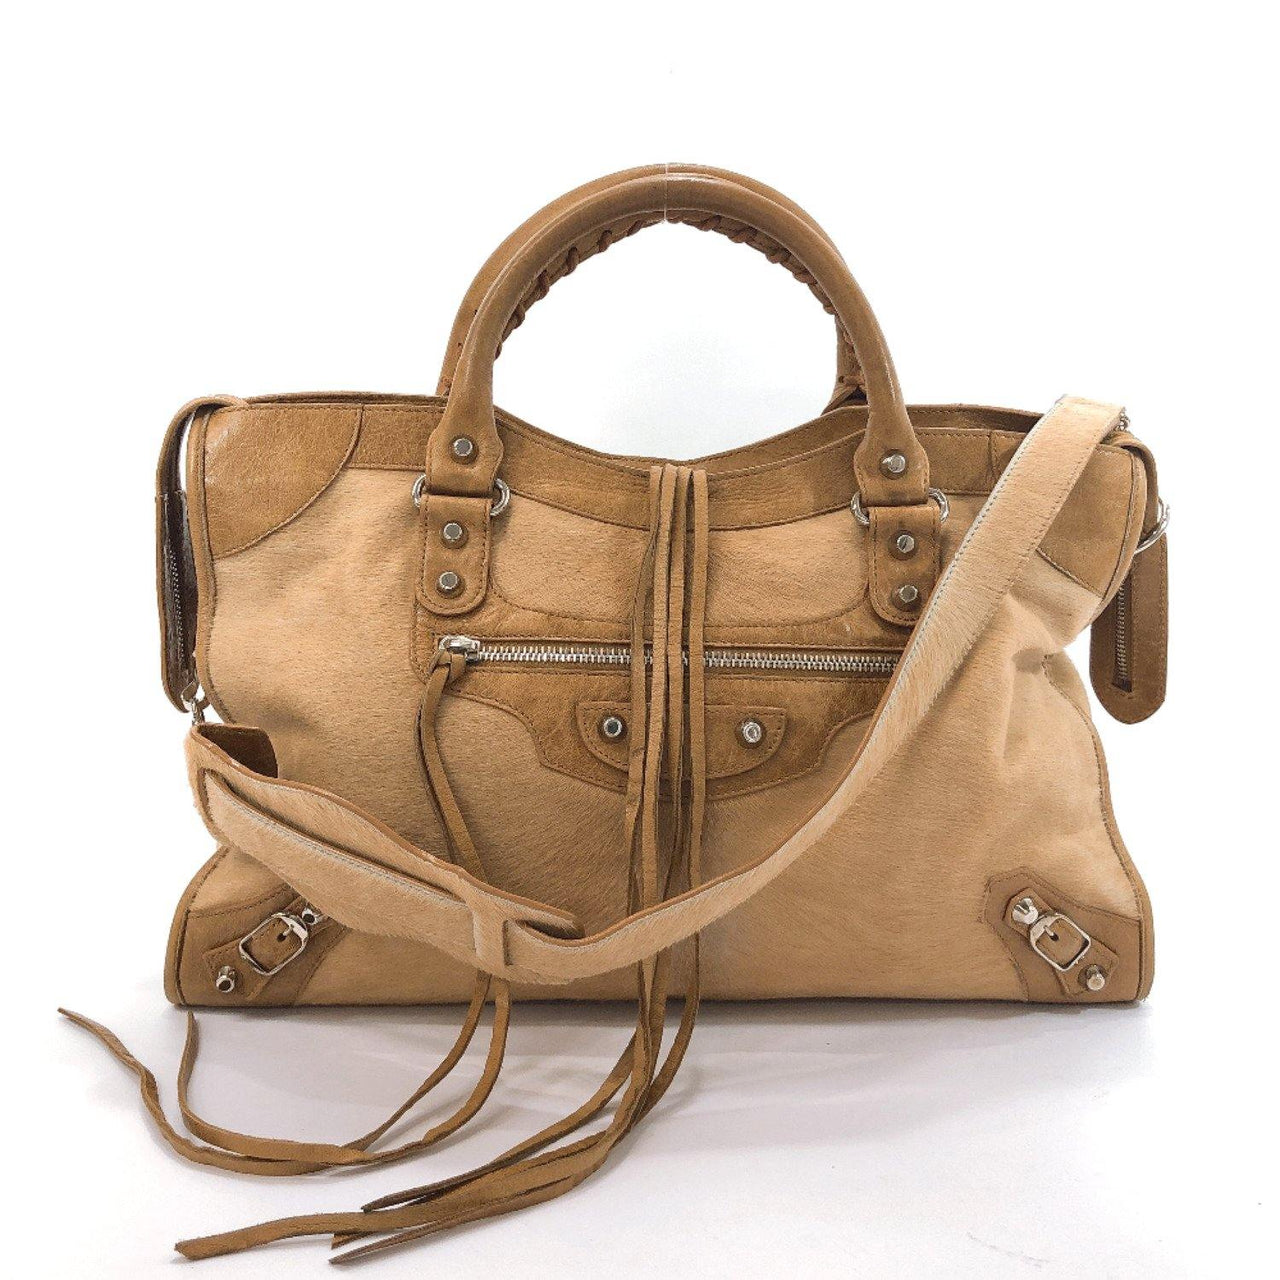 BALENCIAGA Handbag 115748 3444 The city Harako/leather beige Women Used